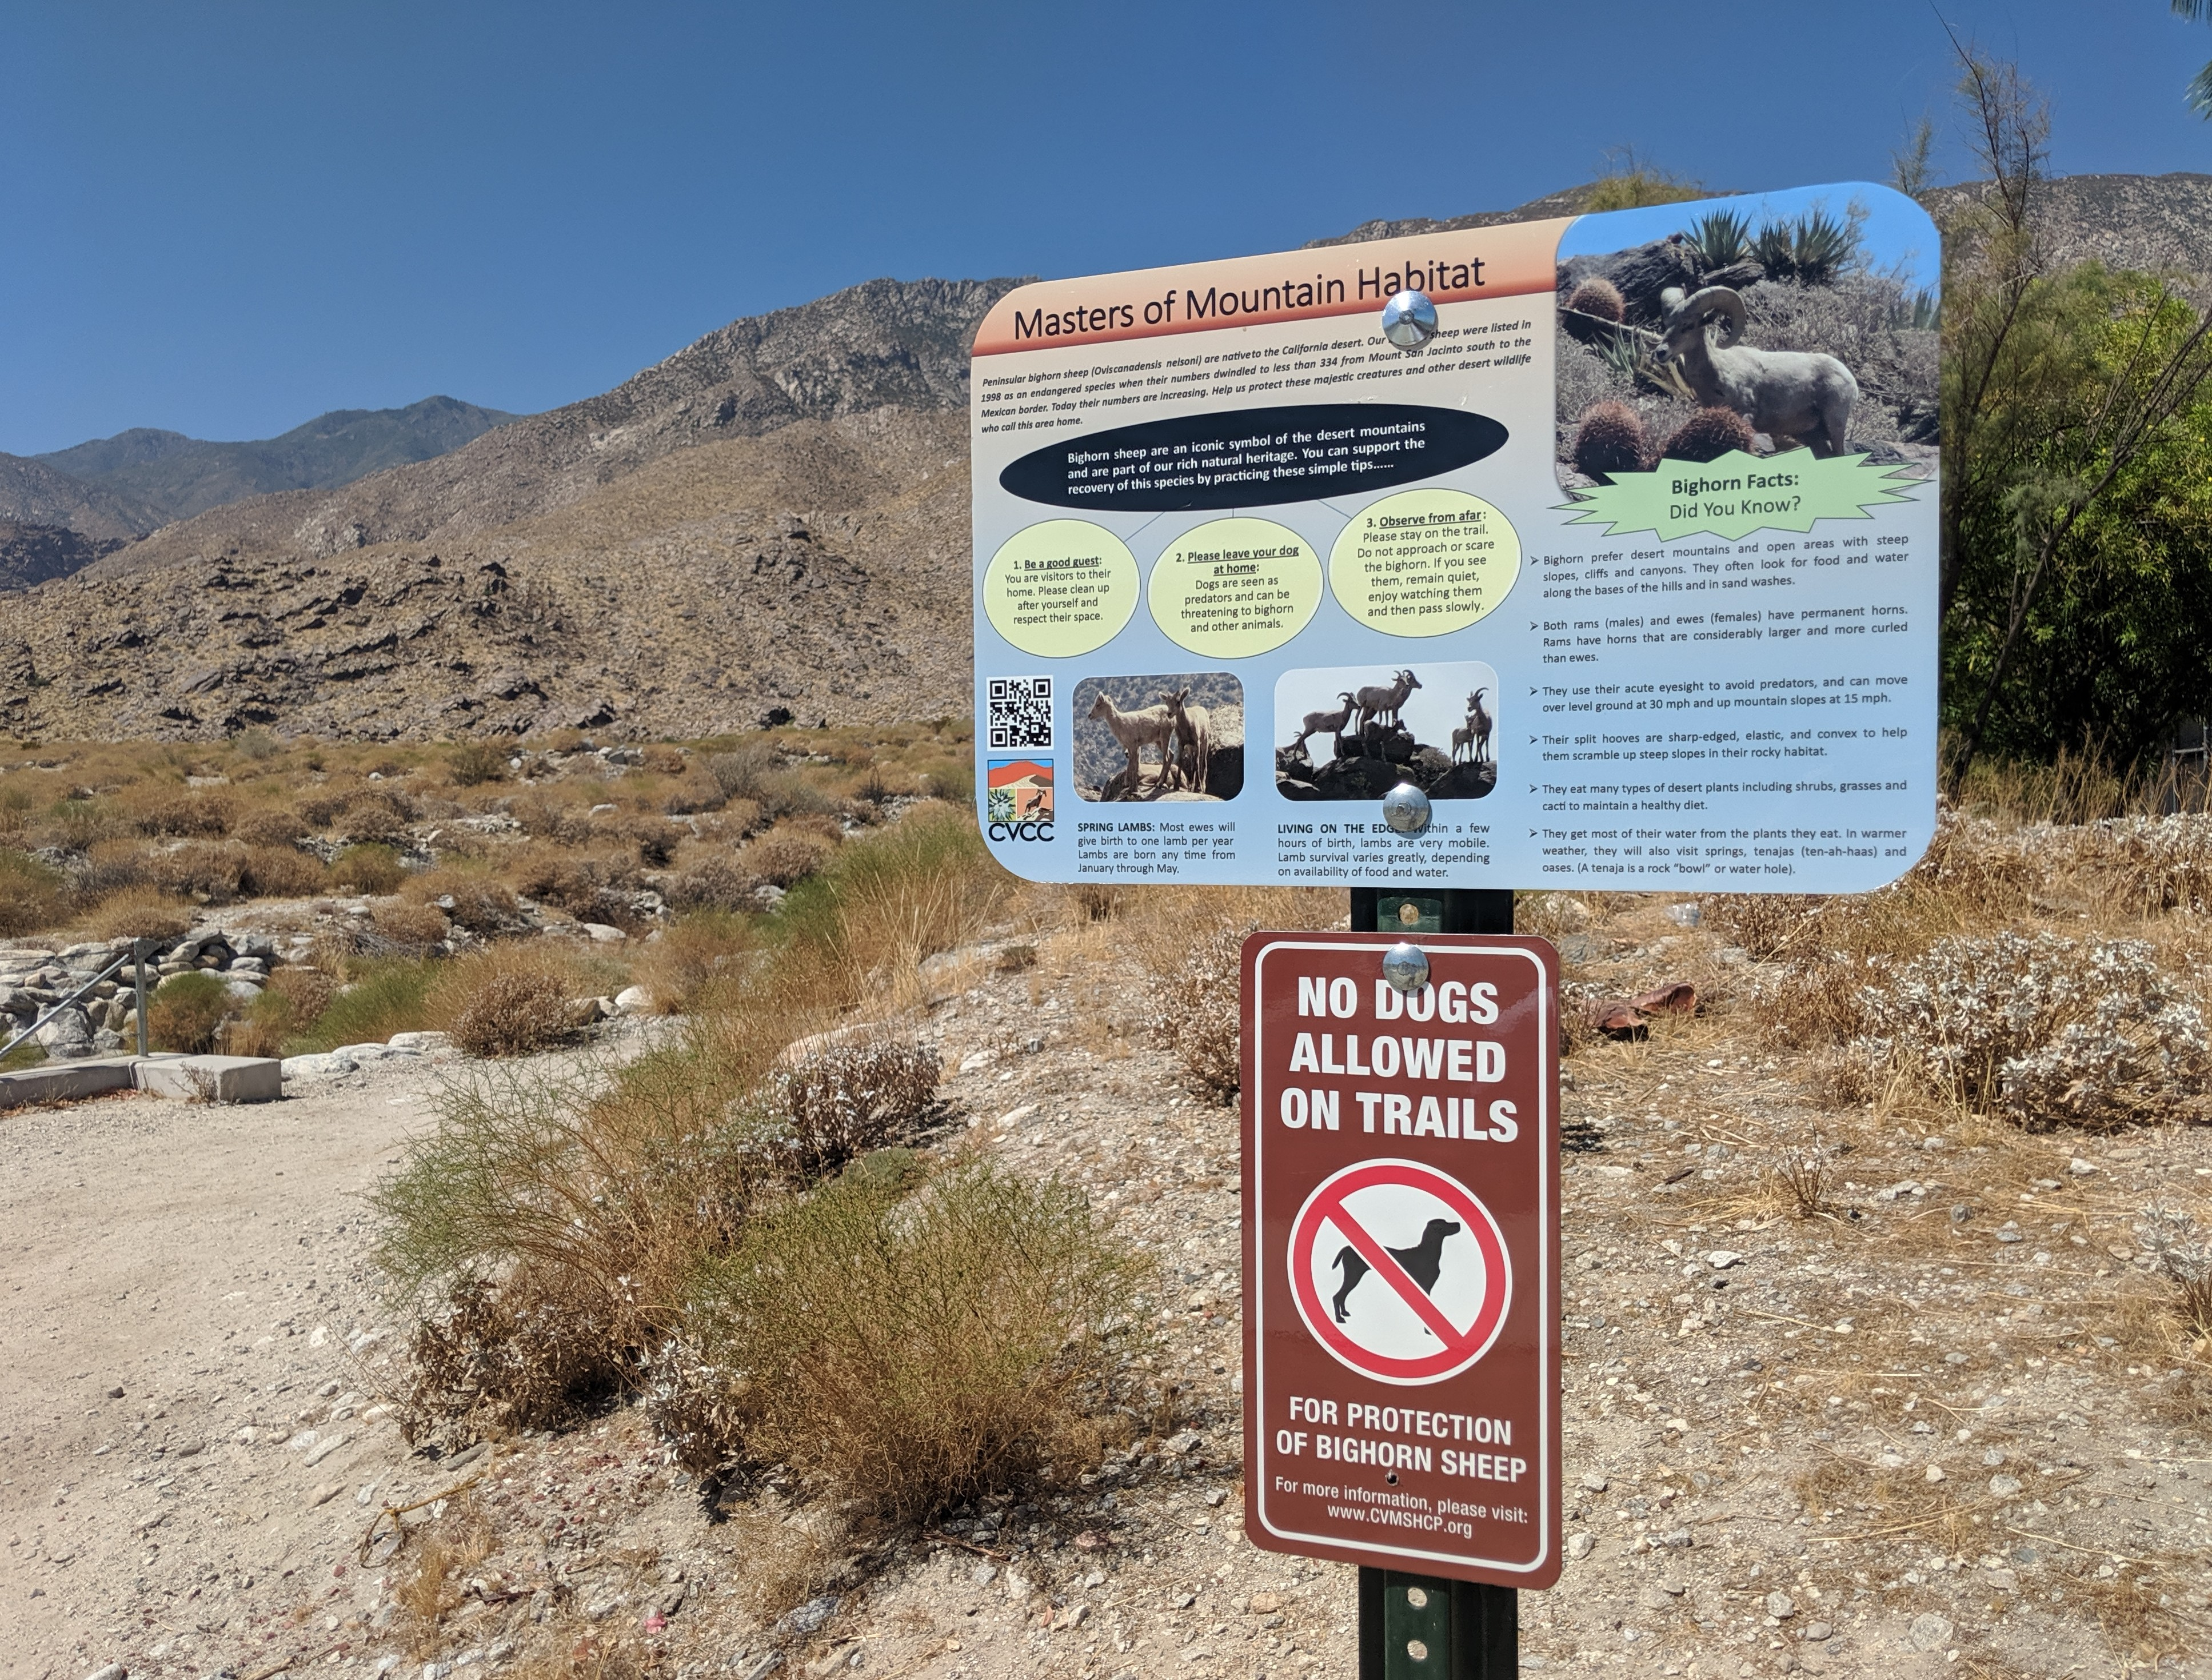 Dogs No Longer Allowed On Popular Palm Springs Trails Nbc Palm Springs News Weather Traffic Breaking News A simple nylon or leather collar that can be quickly removed is safe. dogs no longer allowed on popular palm